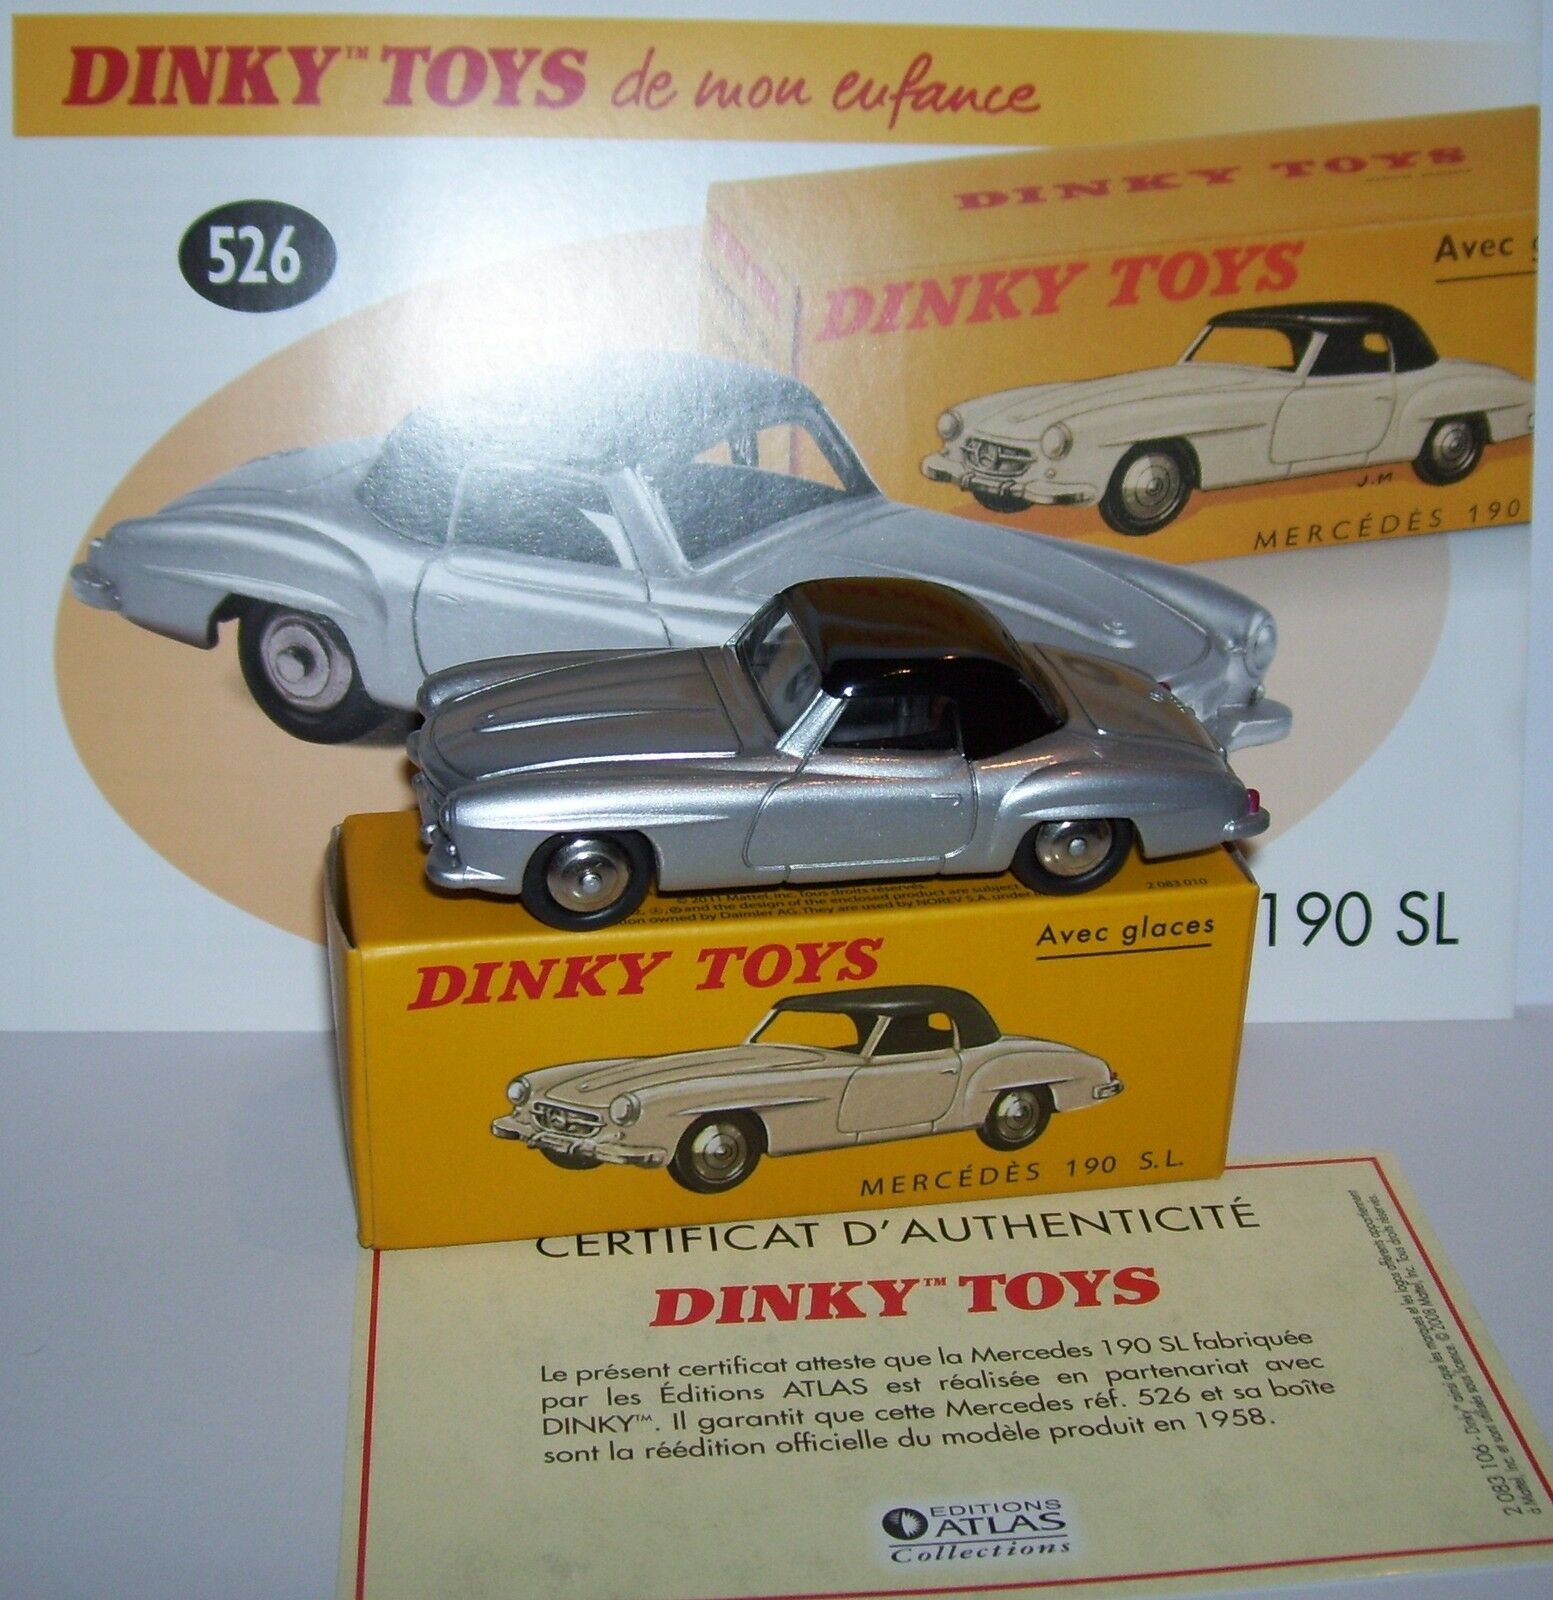 DINKY TOYS ATLAS MERCEDES-BENZ 190 SL BICOLOUR GREY METAL METAL METAL 1 43 REF 526 IN BOX b df5678